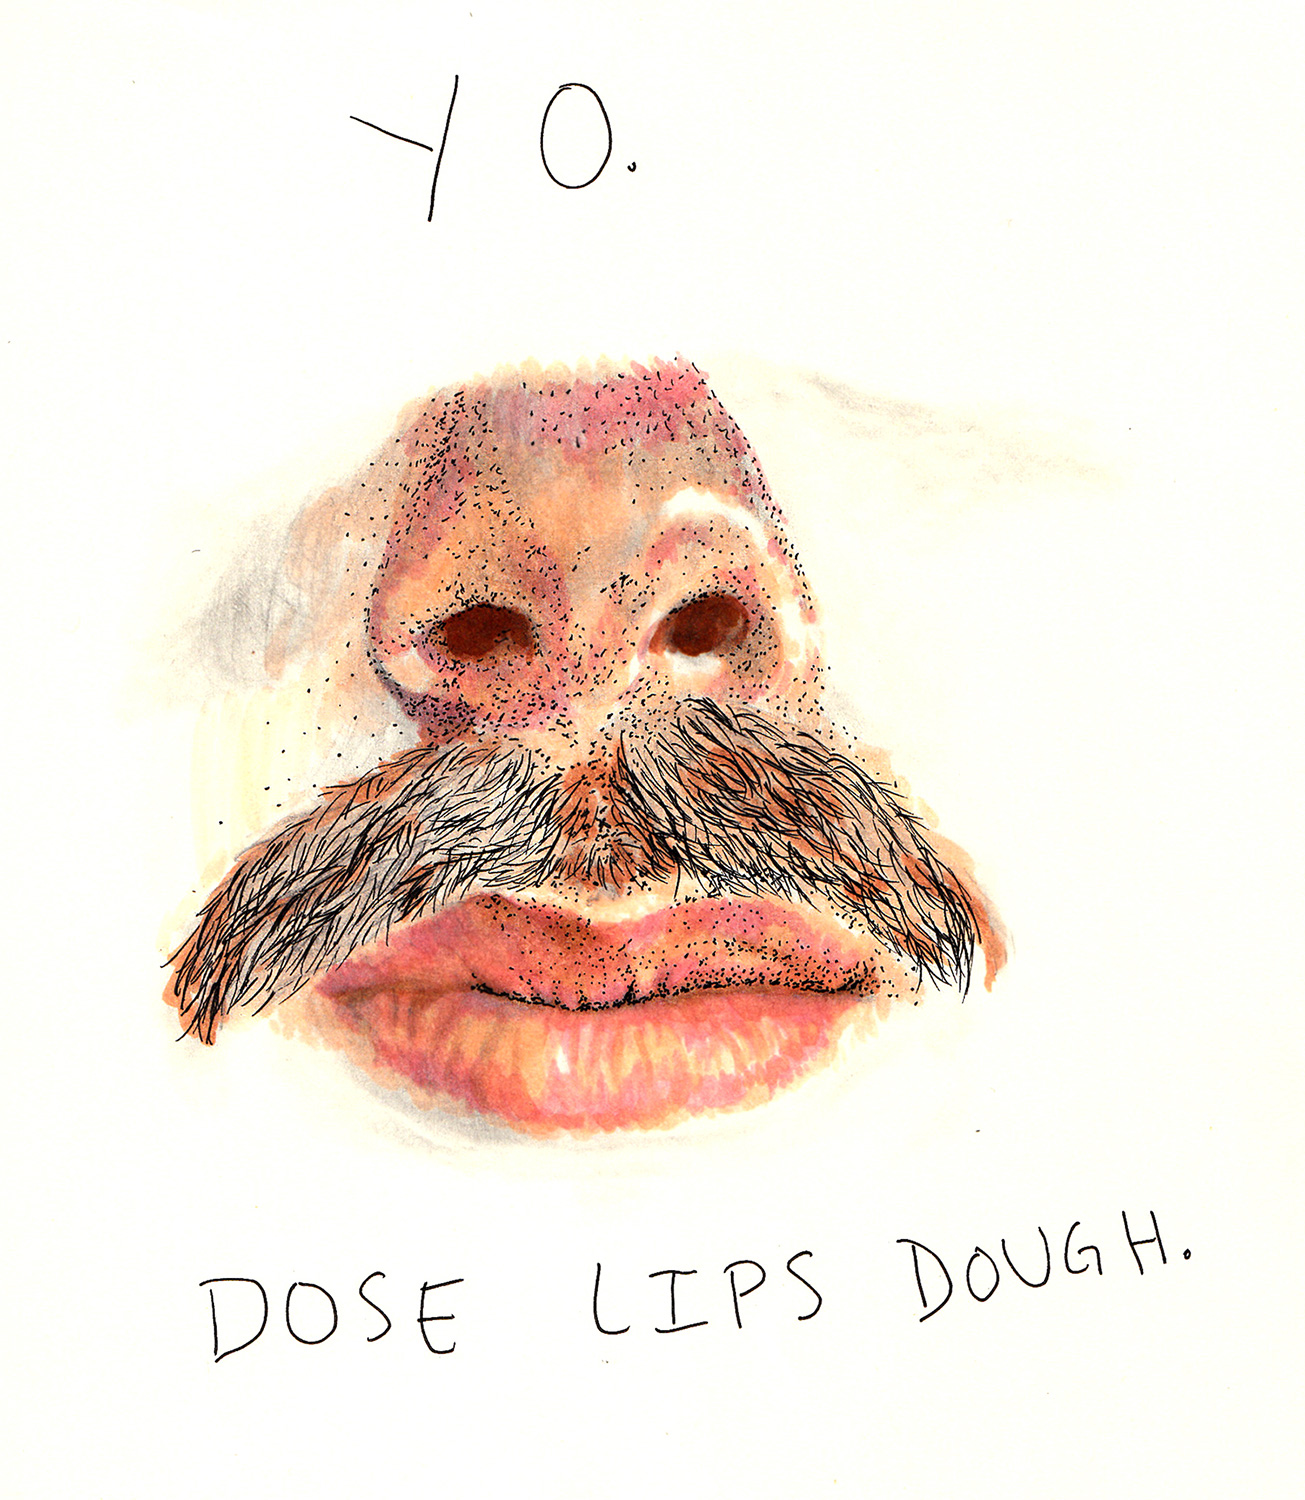 Yo. Dose Lips Dough.